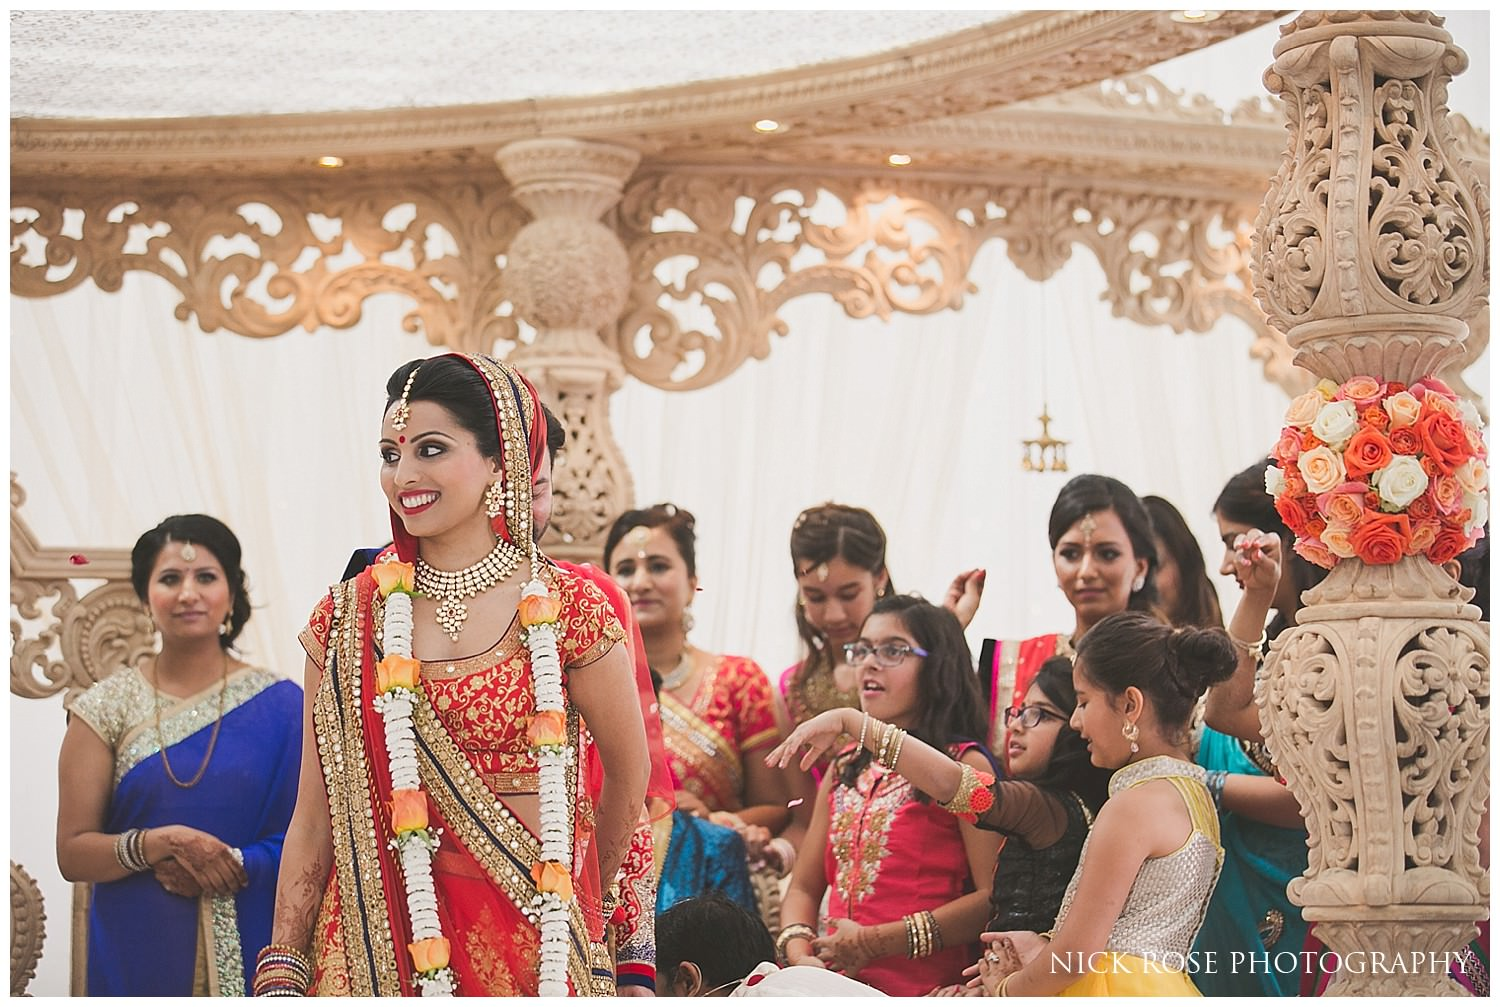 Asian Hindu wedding taking place in the East Wintergarden at London's Canary Wharf